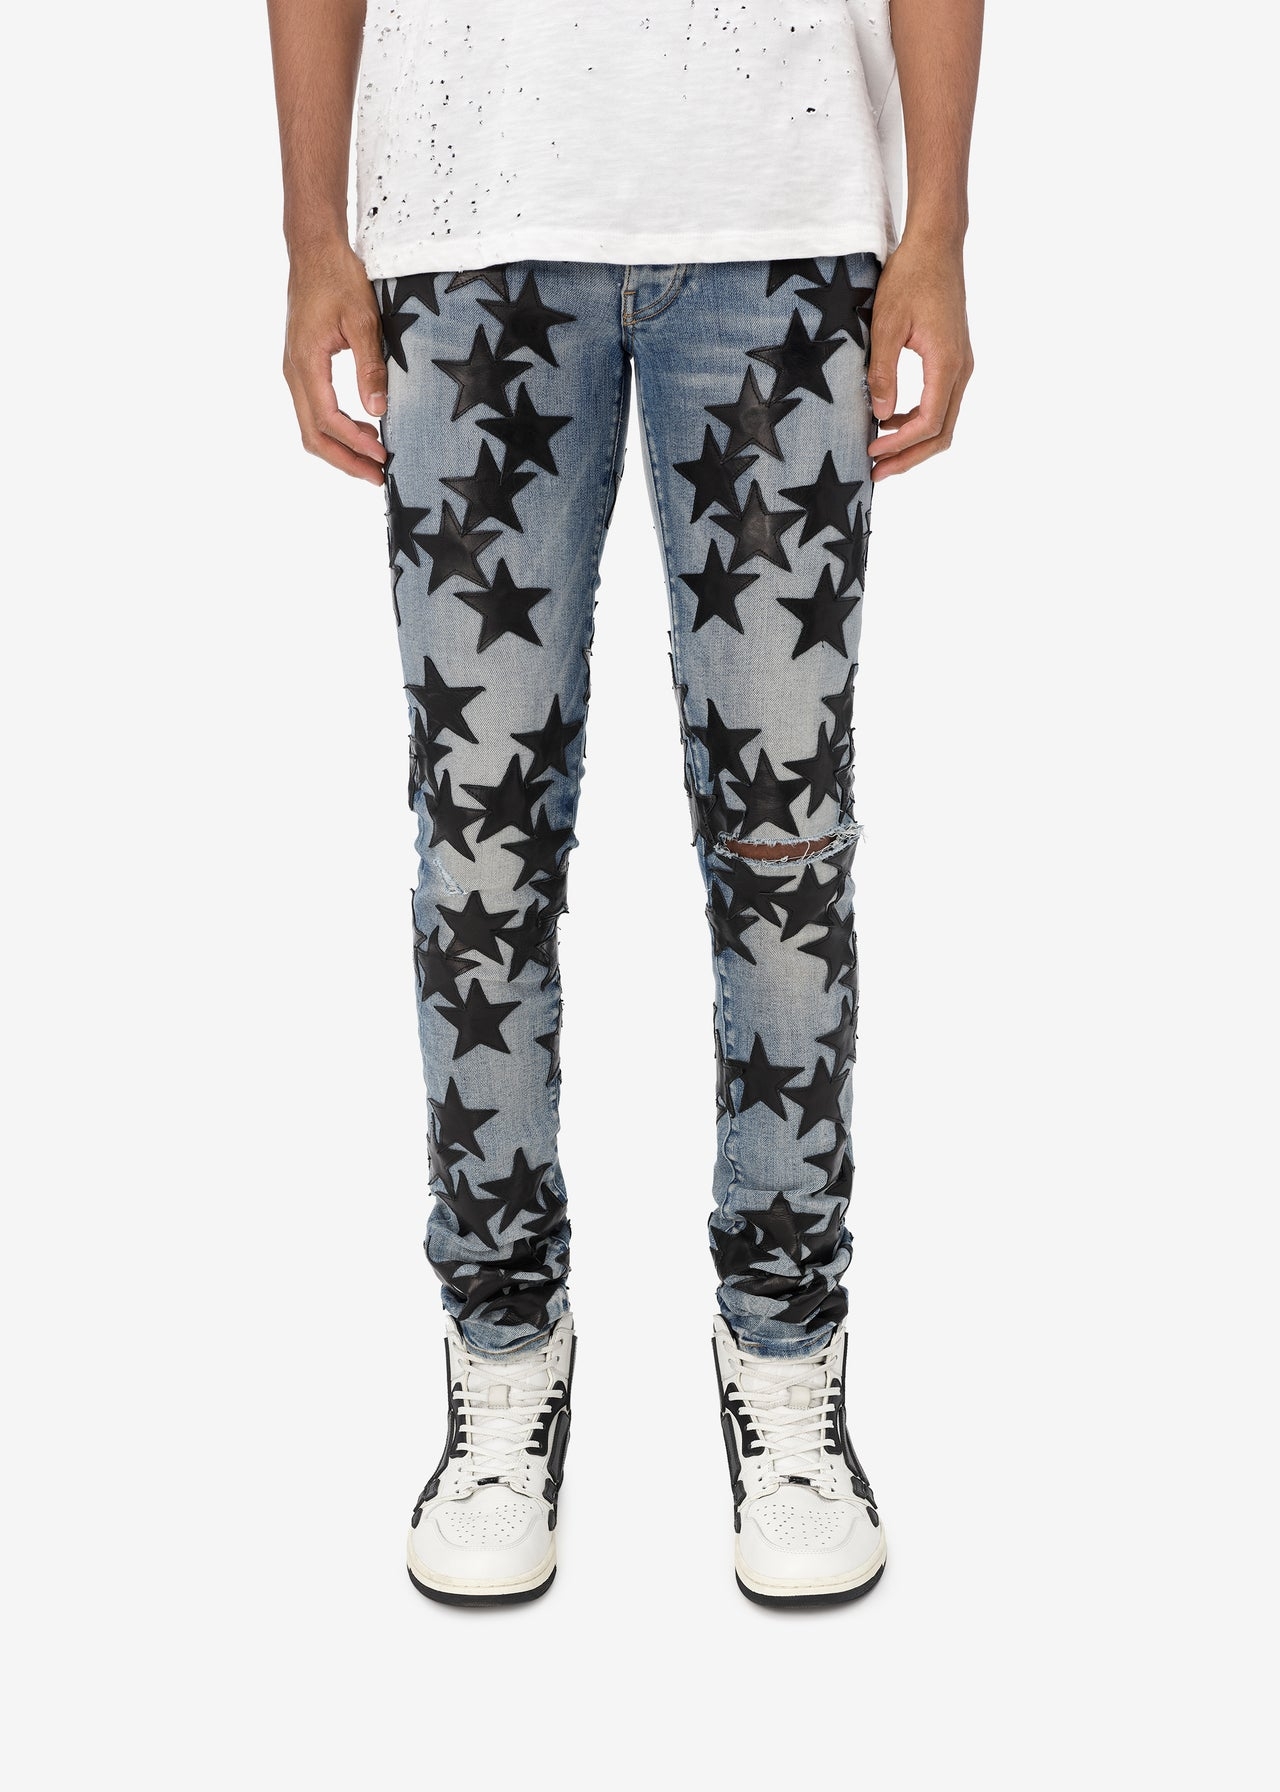 CHEMIST LEATHER STARS JEAN - CLAY INDIGO / BLACK